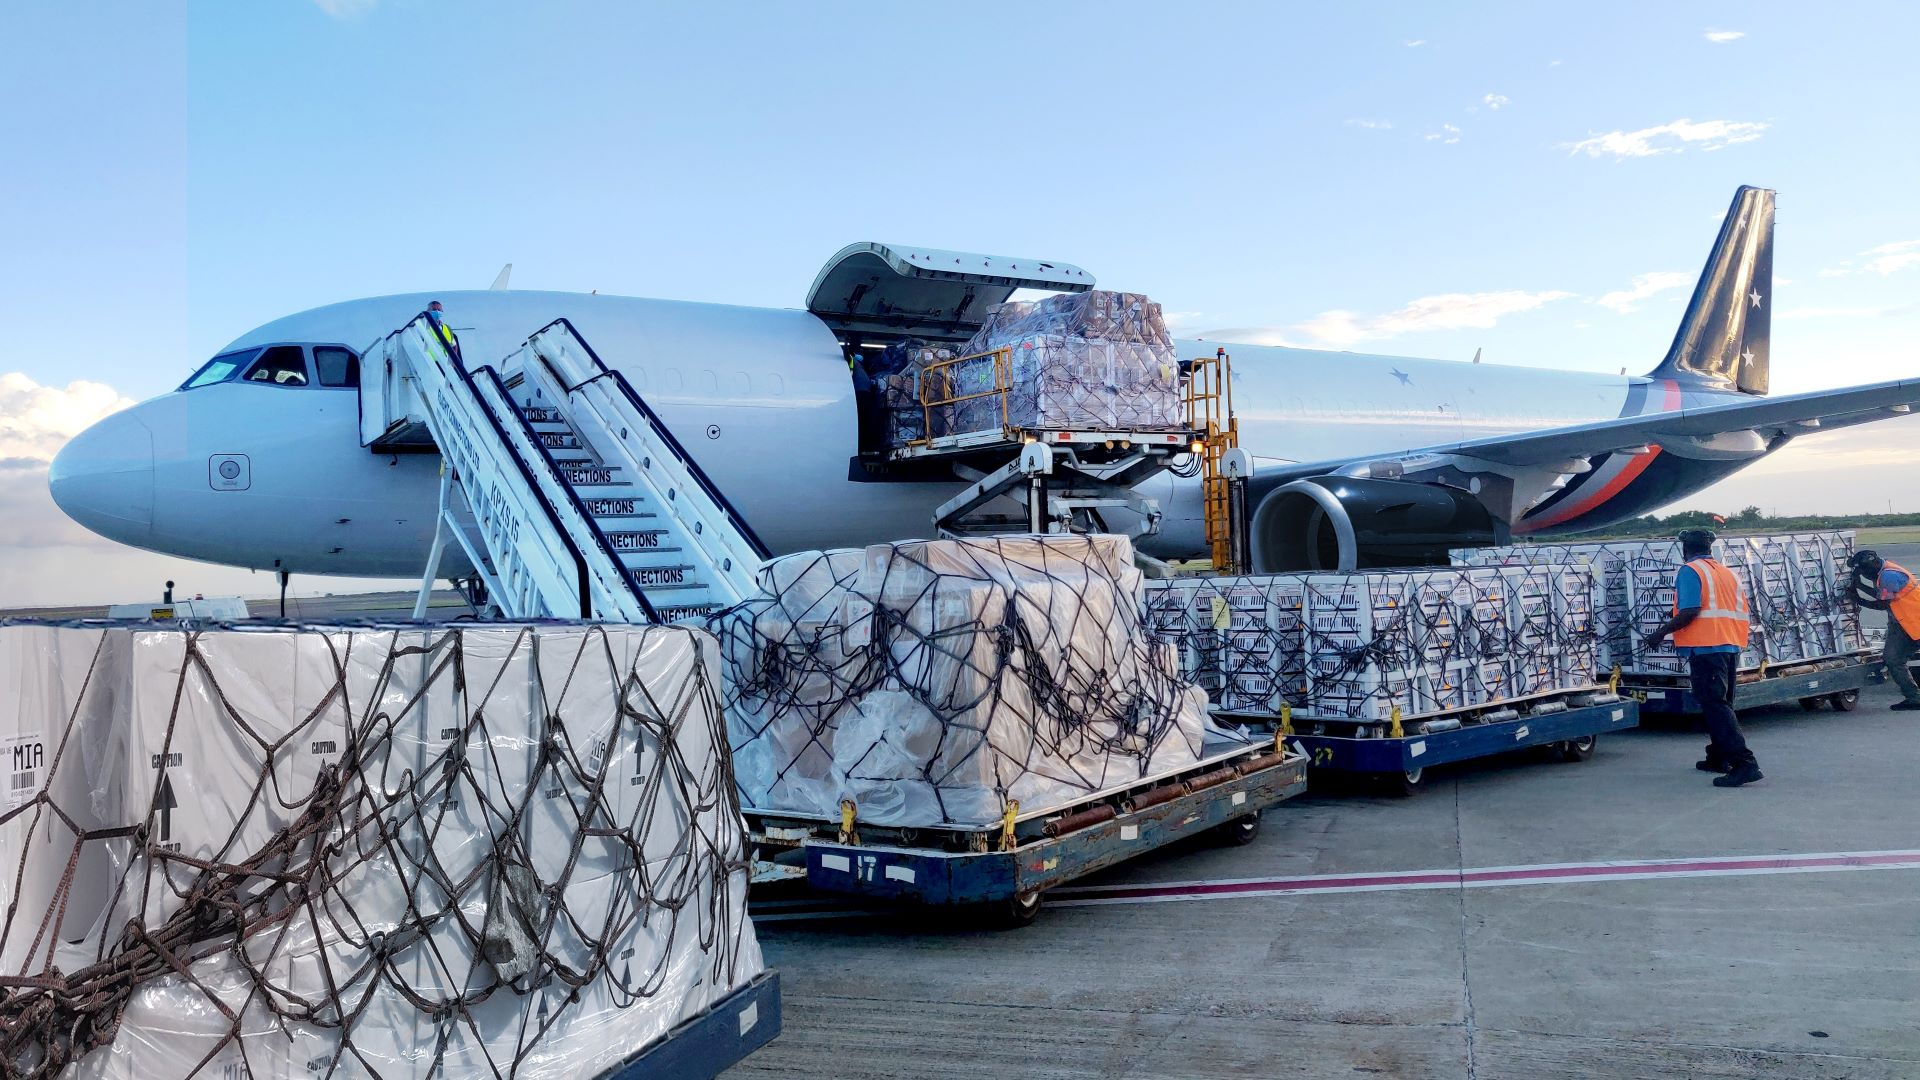 Ground-level view of cargo pallets on the tarmac being loaded on a white aircaft.